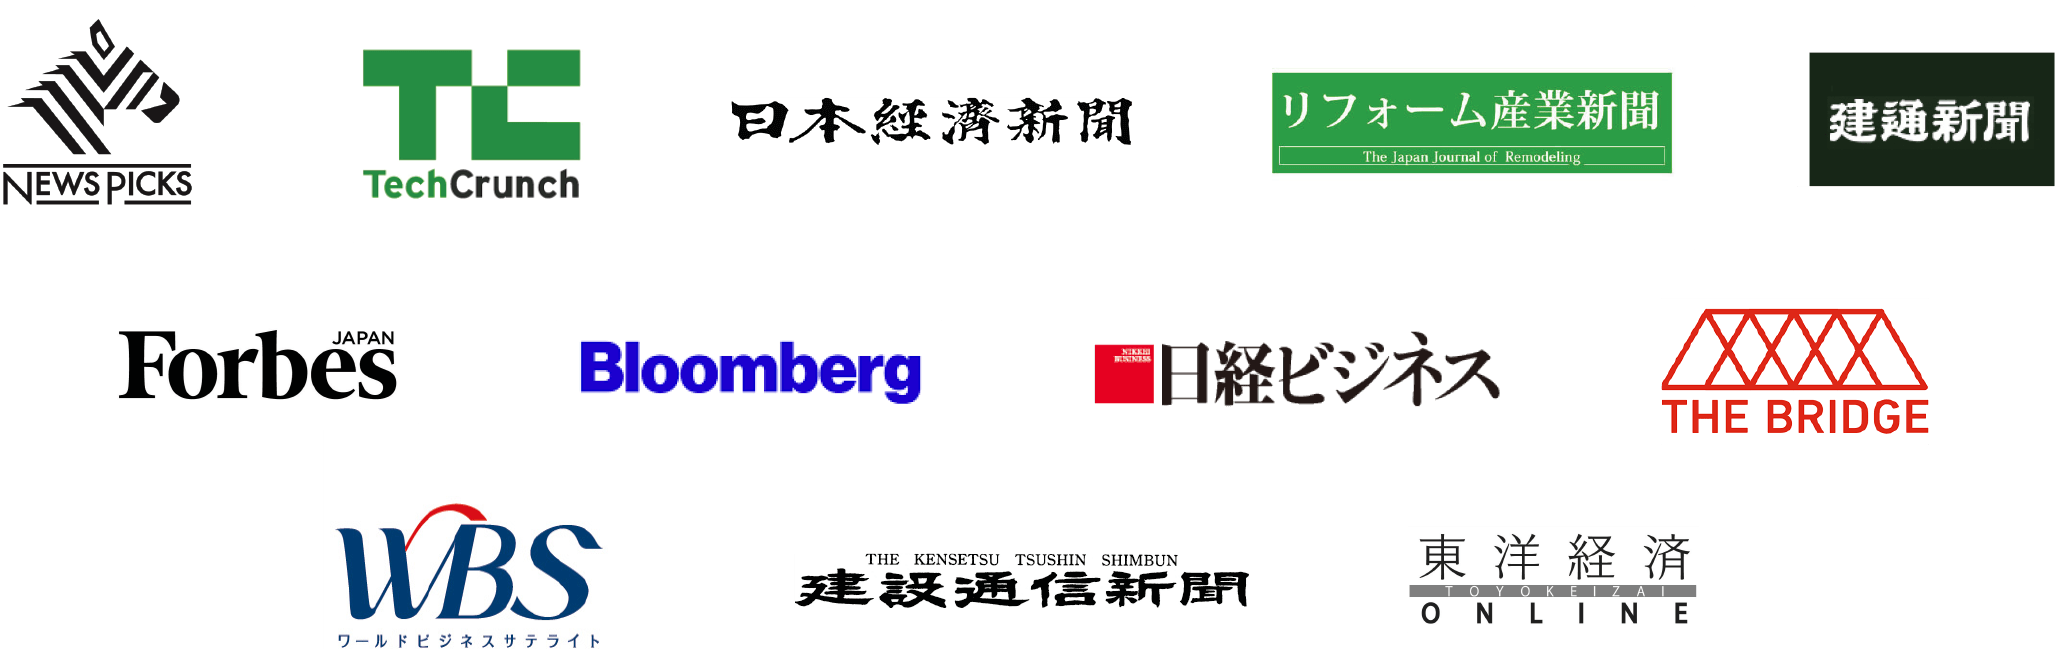 NEWS PICS, TechCrunch, 日本経済新聞, リフォーム産業新聞, 建通新聞, Forbes JAPAN, Bloomberg, 日経ビジネス, THE BRIDGE, ワールドビジネスサテライト, 建設通信新聞, 東洋経済ONLINE